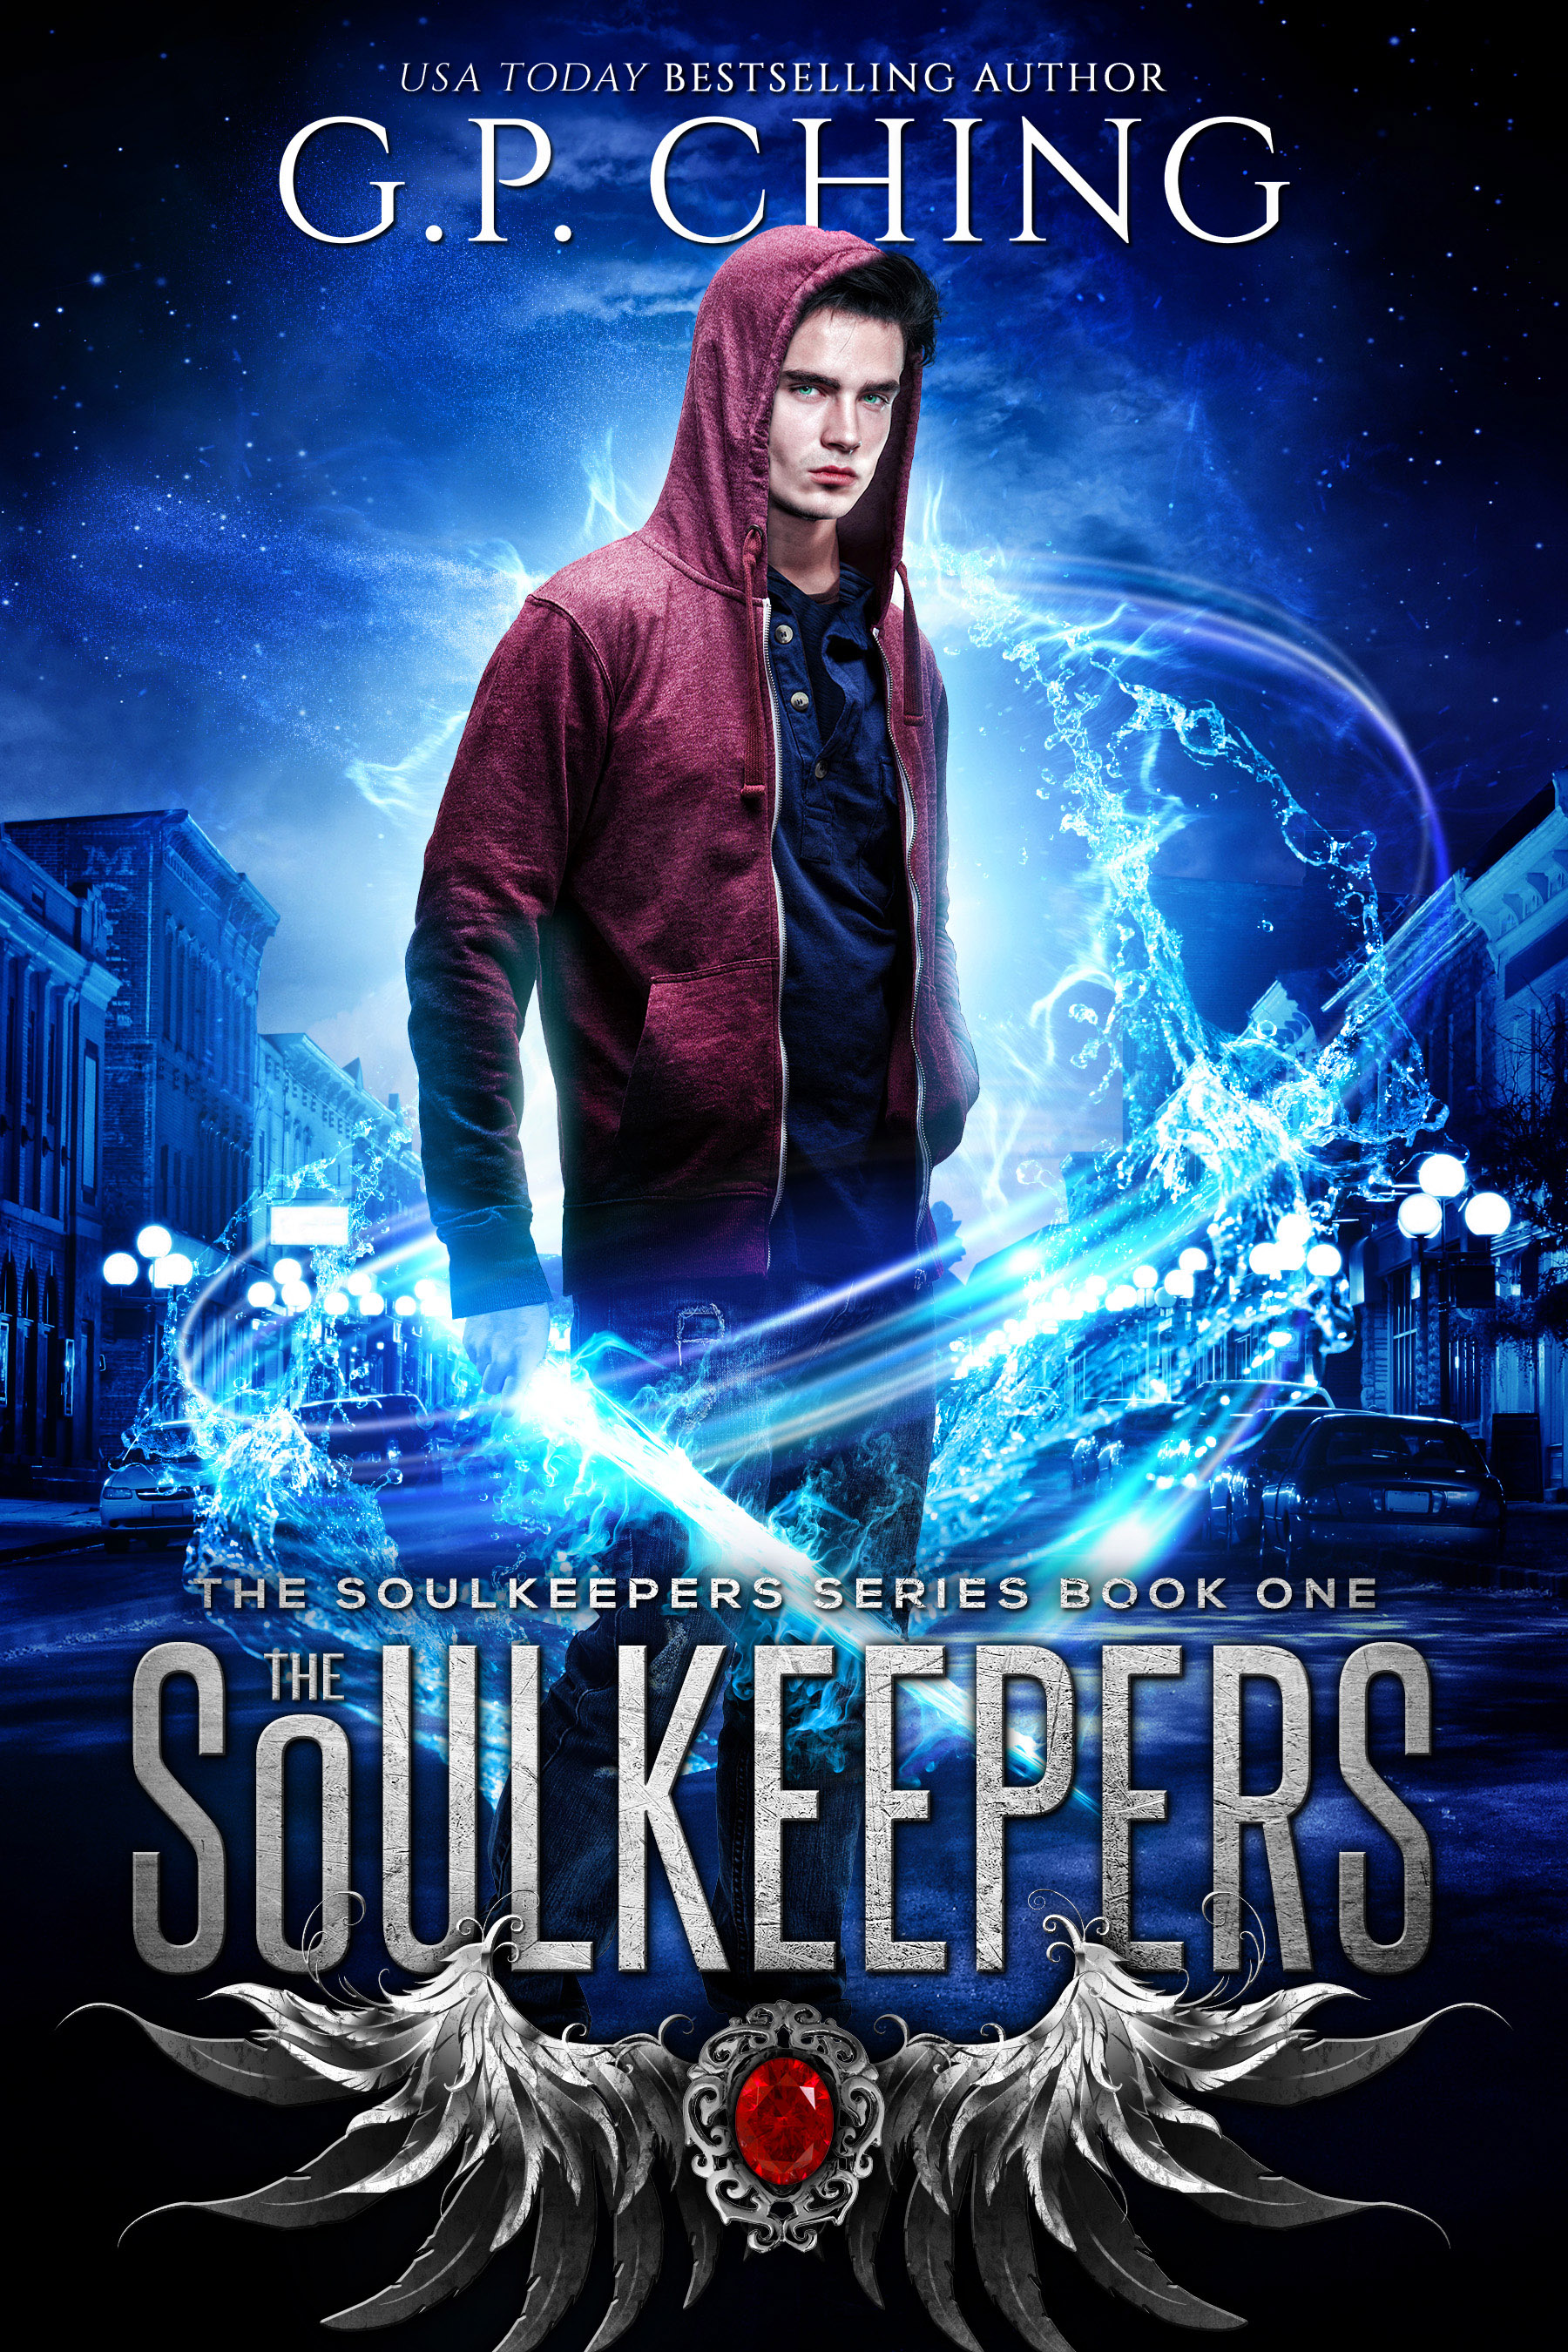 The Soulkeepers Book 1 (sst-cclxxxiv)